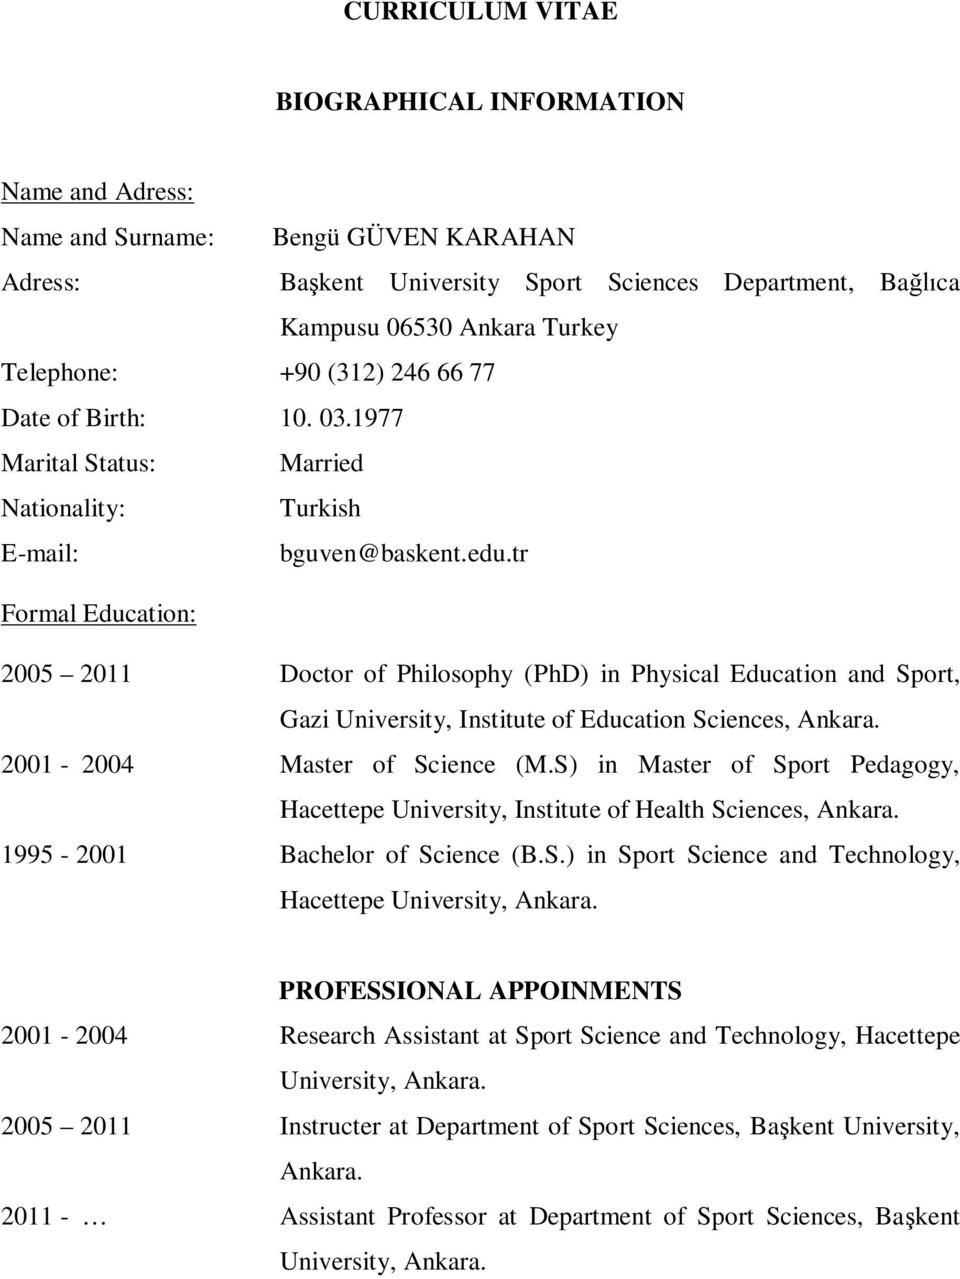 tr Formal Education: 2005 2011 Doctor of Philosophy (PhD) in Physical Education and Sport, Gazi University, Institute of Education Sciences, Ankara. 2001-2004 Master of Science (M.